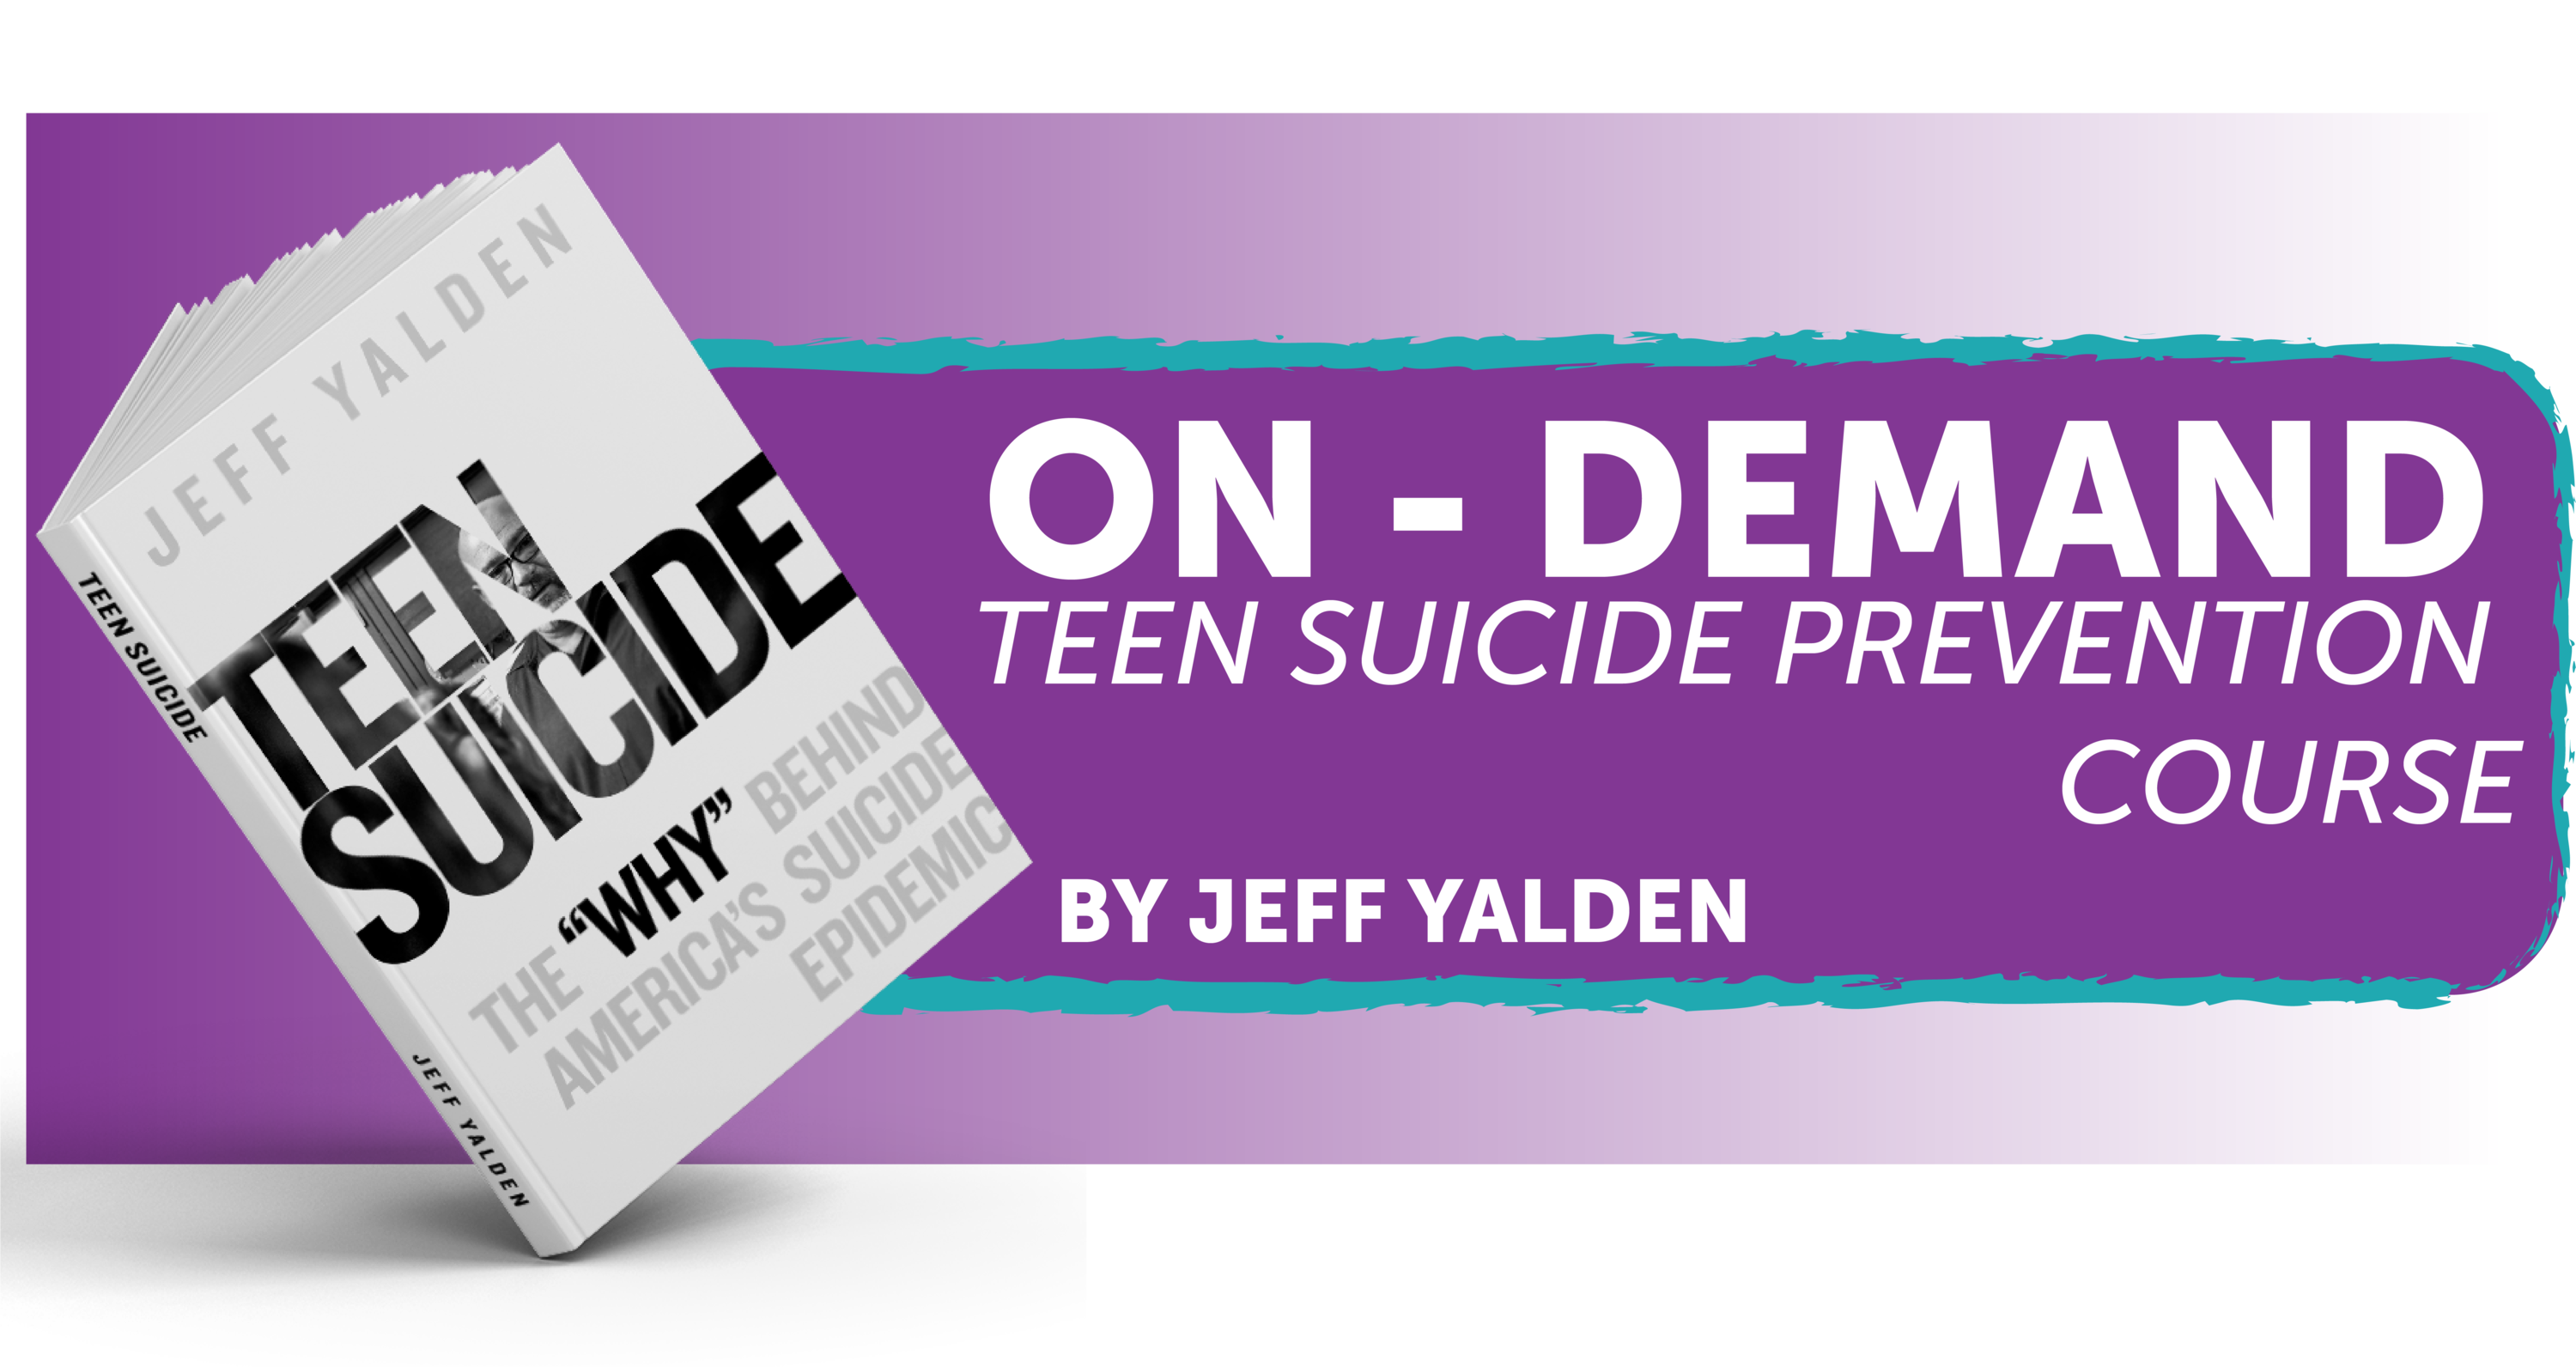 Teen Suicide Prevention, Suicide Prevention, Suicide, Online Suicide Prevention,